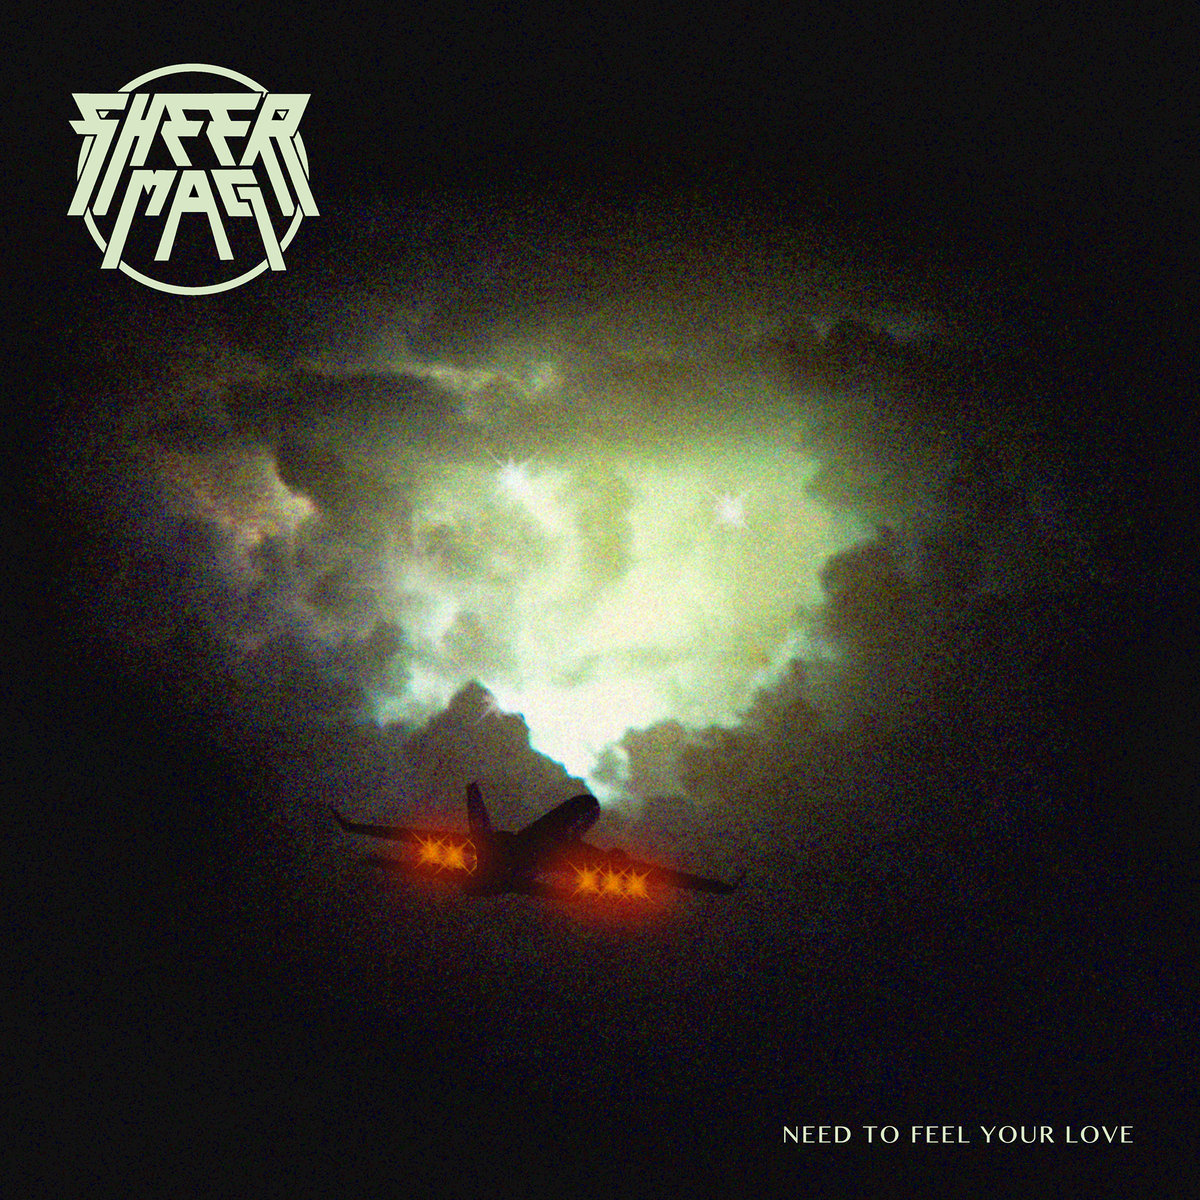 Album Review: Need To Feel Your Love by Sheer Mag - Whatever happened to rock n roll, man? Like real rock n roll. Like, the rock n roll that when you listen to it it feels like you're white-kunckling a live wire? Rock n roll like that doesn't rely on gimmicks like fancy costumes or outrageous names (although that doesn't necessarily hurt), it doesn't rely on super heavy tuned down instruments and blast beats reserved for heavy metal, no. REAL rock n roll comes from the soul. The heart. The sexual organs. Real rock n roll you can dance to, fight to, love to, laugh to, cry to, and fuck to all in one fell swoop. What ever happened to that stuff? Are we too scared of it? Did we become a society that wants to shy away from true emotion and expression in the mainstream media and art because were afraid of ourselves? Or is the world just so incomprehensibly fucked that it cant take stripping itself down, taking a look in the mirror, and stepping on a fine tuned distorted power chord while singing about it.. because its ashamed of itself? So they exiled real rock n roll to the underground and vilified any true brave soul that ventures down there after it? Leaving kids like you and me to fend for ourselves desperately reaching for something real.. some of us are lucky enough to have grabbed that Fun House record.. some didn't get so lucky, and it ain't their fault. What a pity. But they still expect us to sit back and let us feed our children a steady diet of processed pop bullshit void of true emotion and wouldn't dare to provoke a challenging thought and then turn it back around on the listener because they cant keep up with their pretentious bullshit fake standards? Keep eating McDonalds and watching Fox News, ya pricks… You're the reason were pissed off. So, once I find a second to put my middle fingers down, I suppose a thank you is in order.. because you're the reason why bands like Sheer Mag are on a mission to bring rock n roll back to the masses. Would this really b